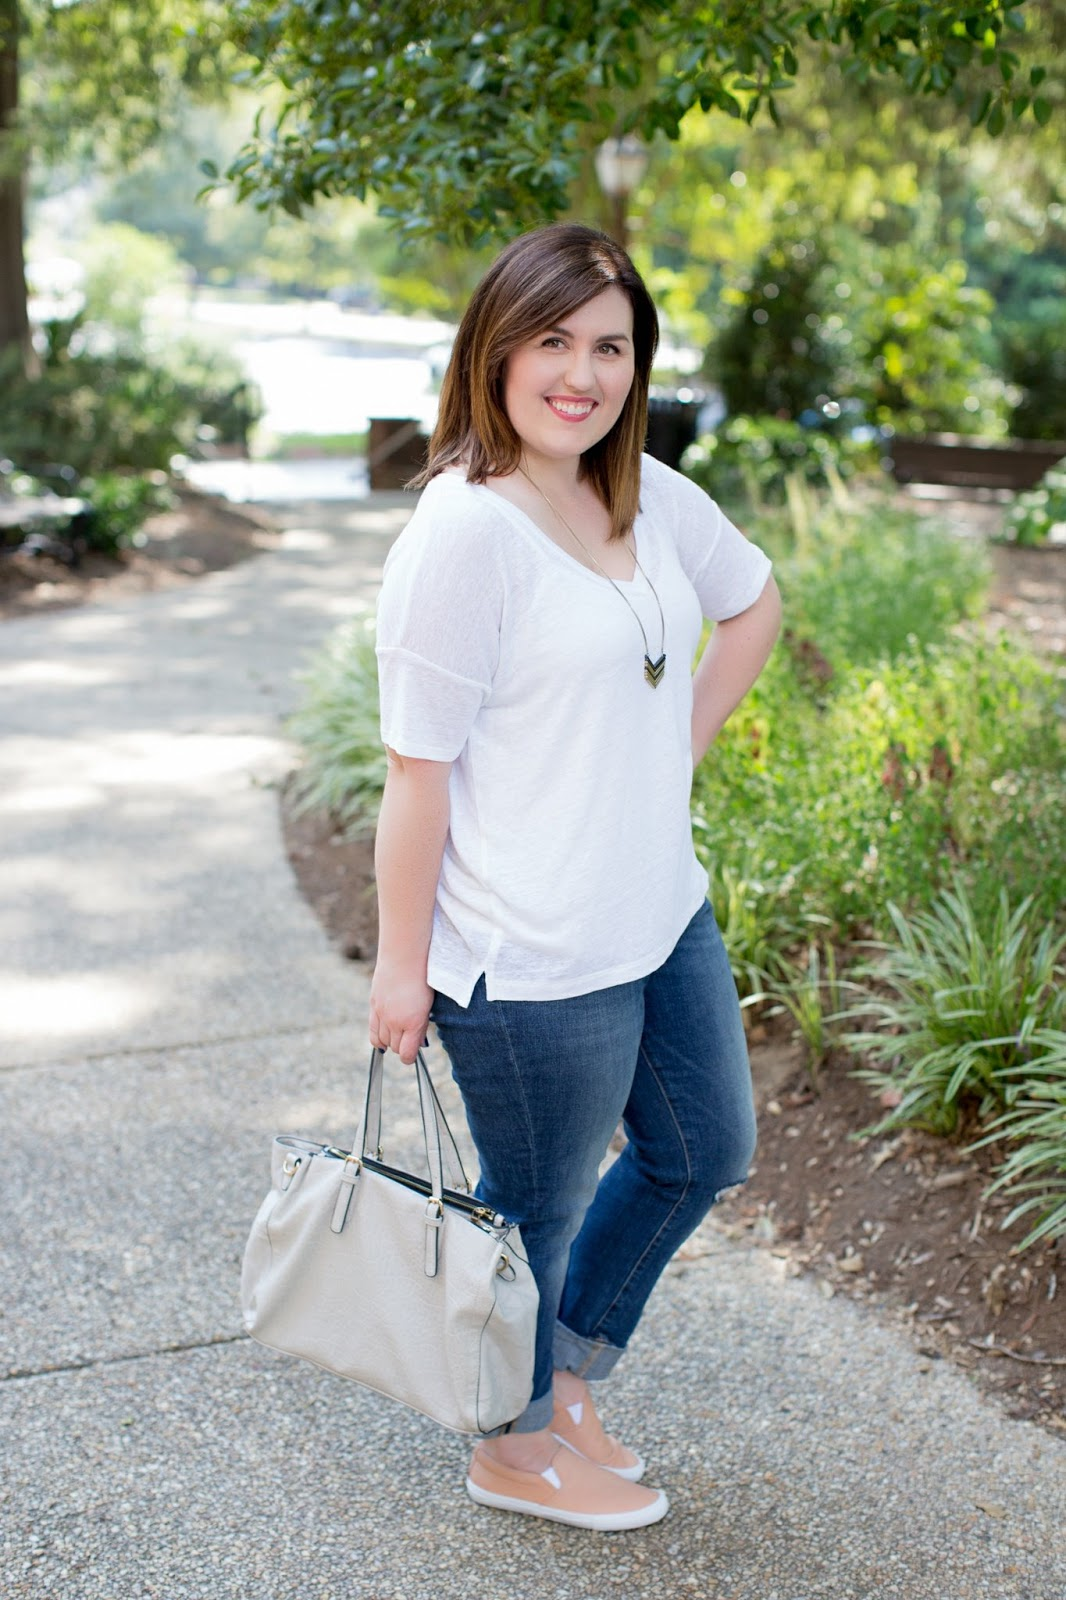 Rebecca Lately White Linen Tee Old Navy Boyfriend Jeans Pink Slip On Sneakers Urban Expressions